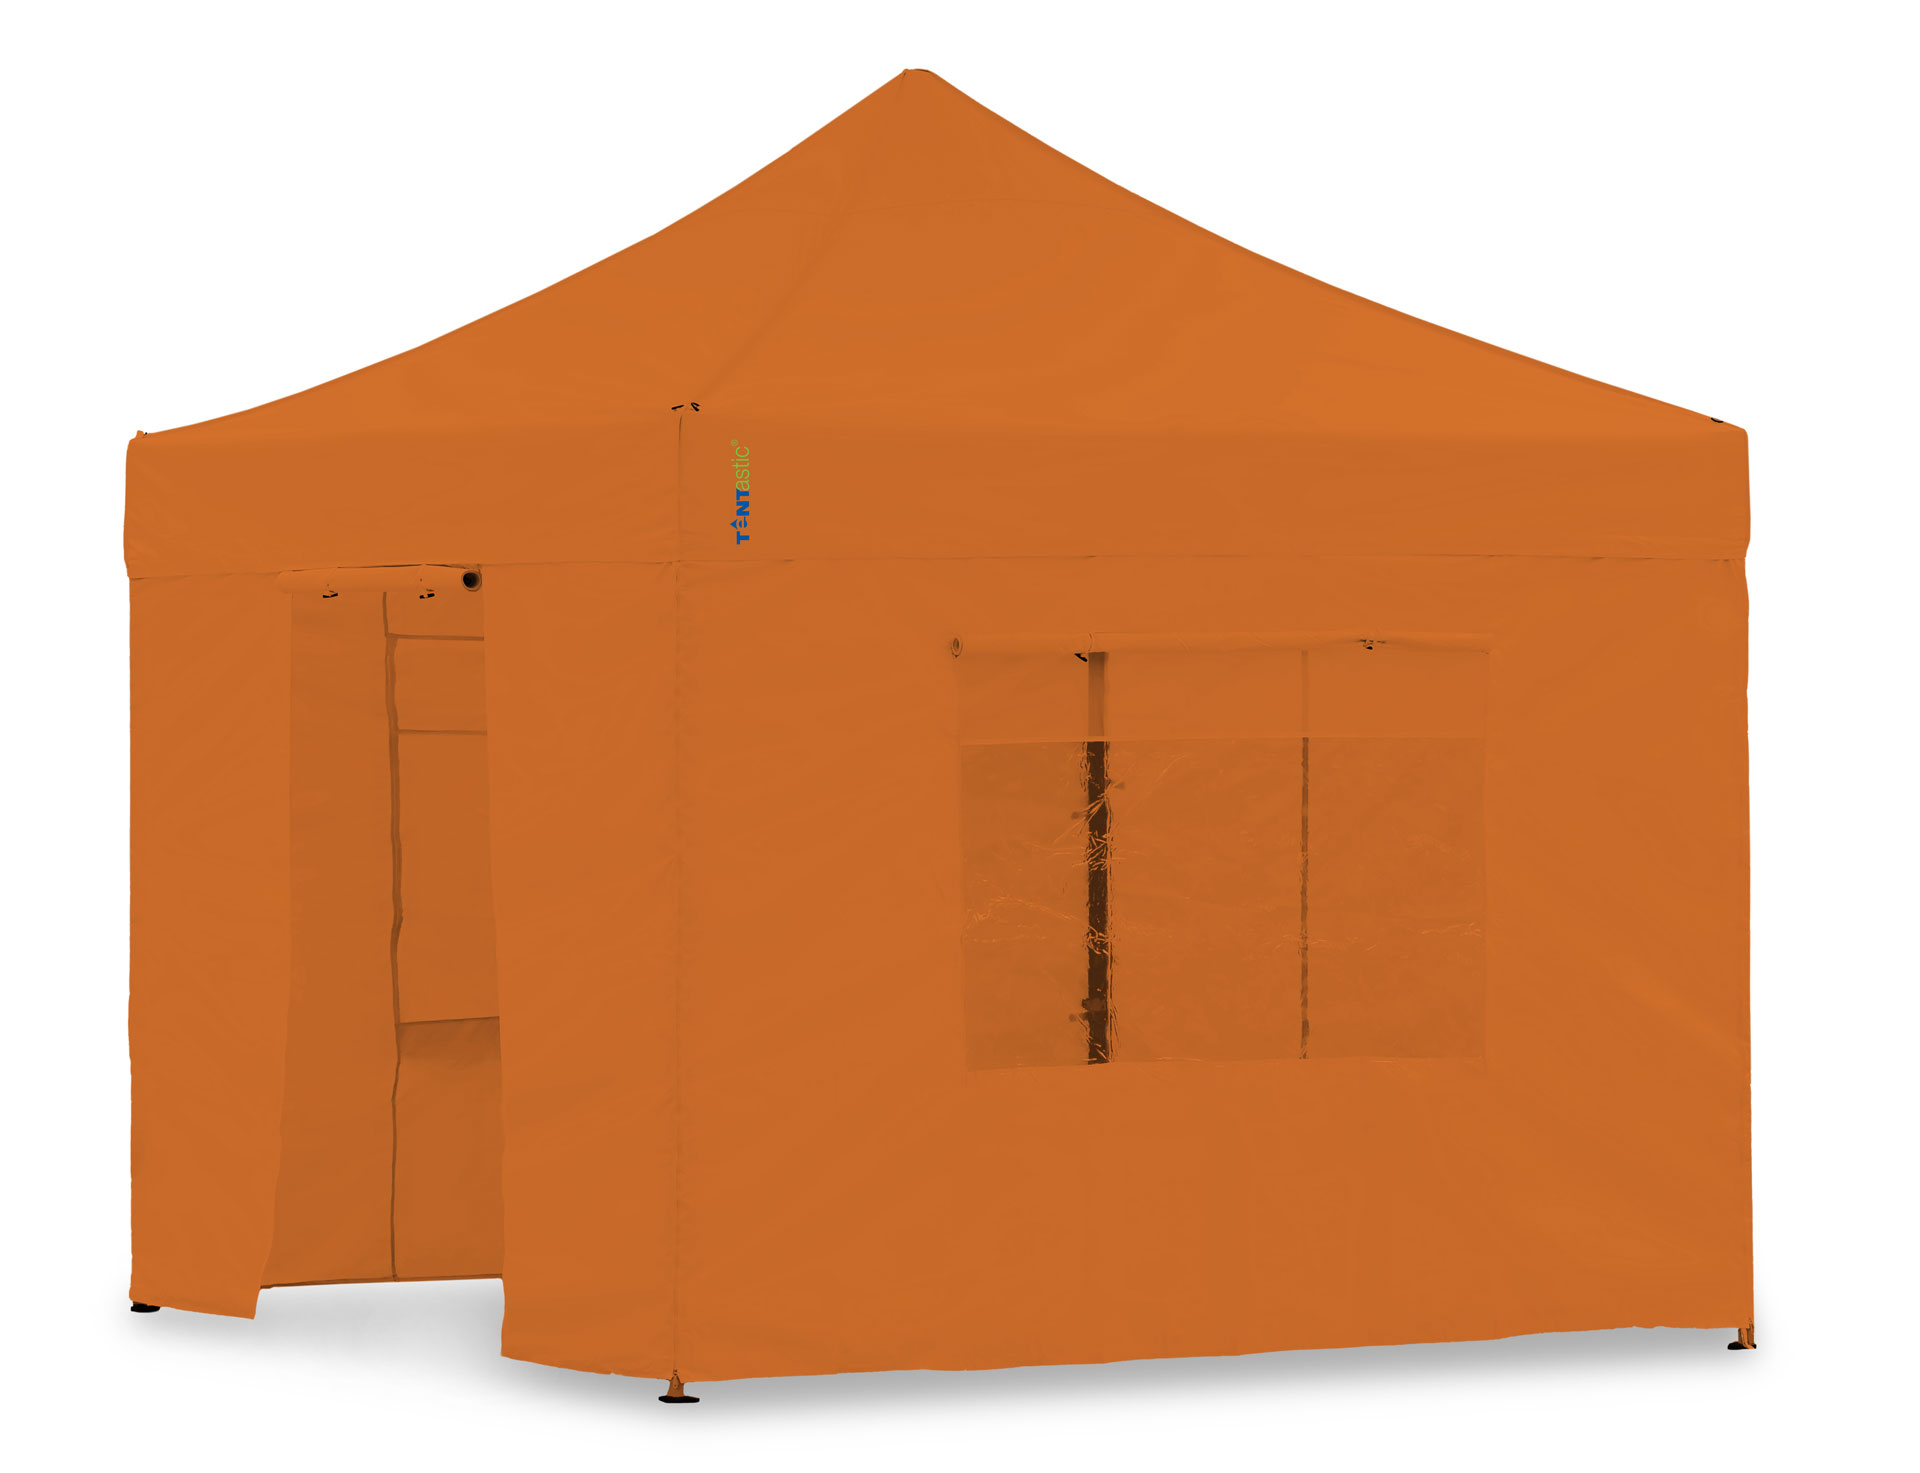 Faltpavillon 4x4m Seitenwand Set Pvc Orange 4x4m Für Tentastic Faltpavillion